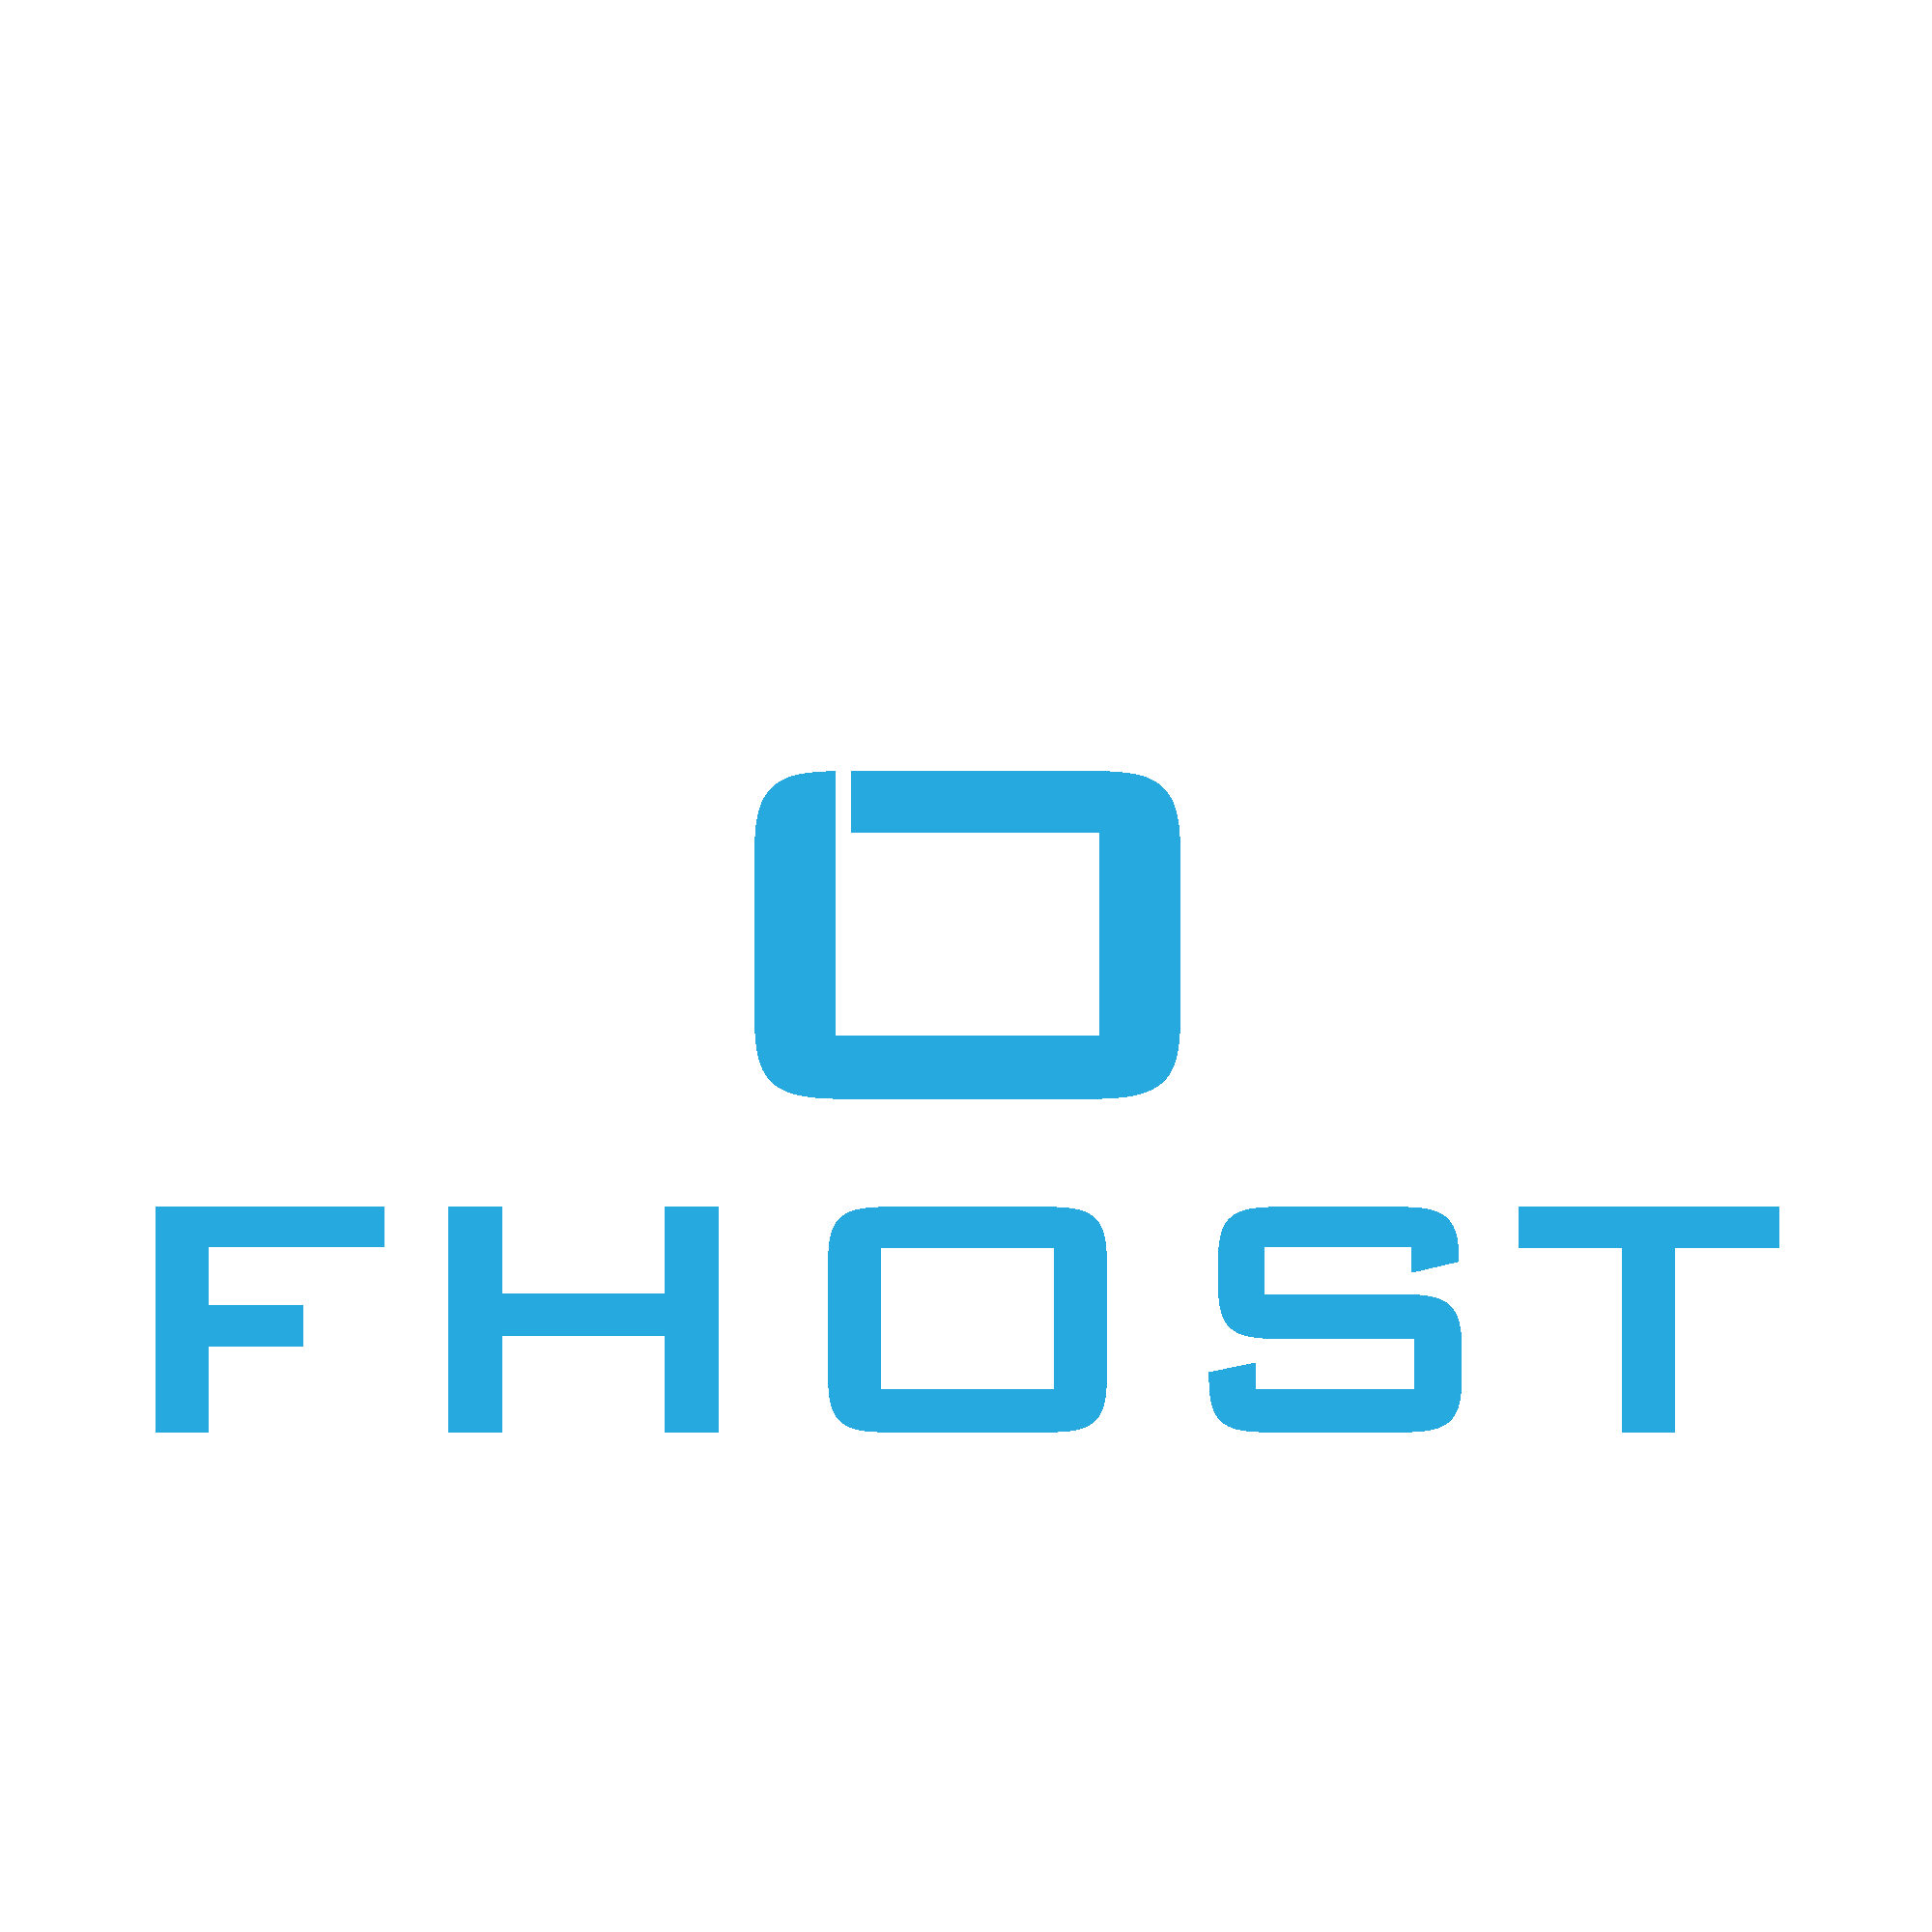 FHost